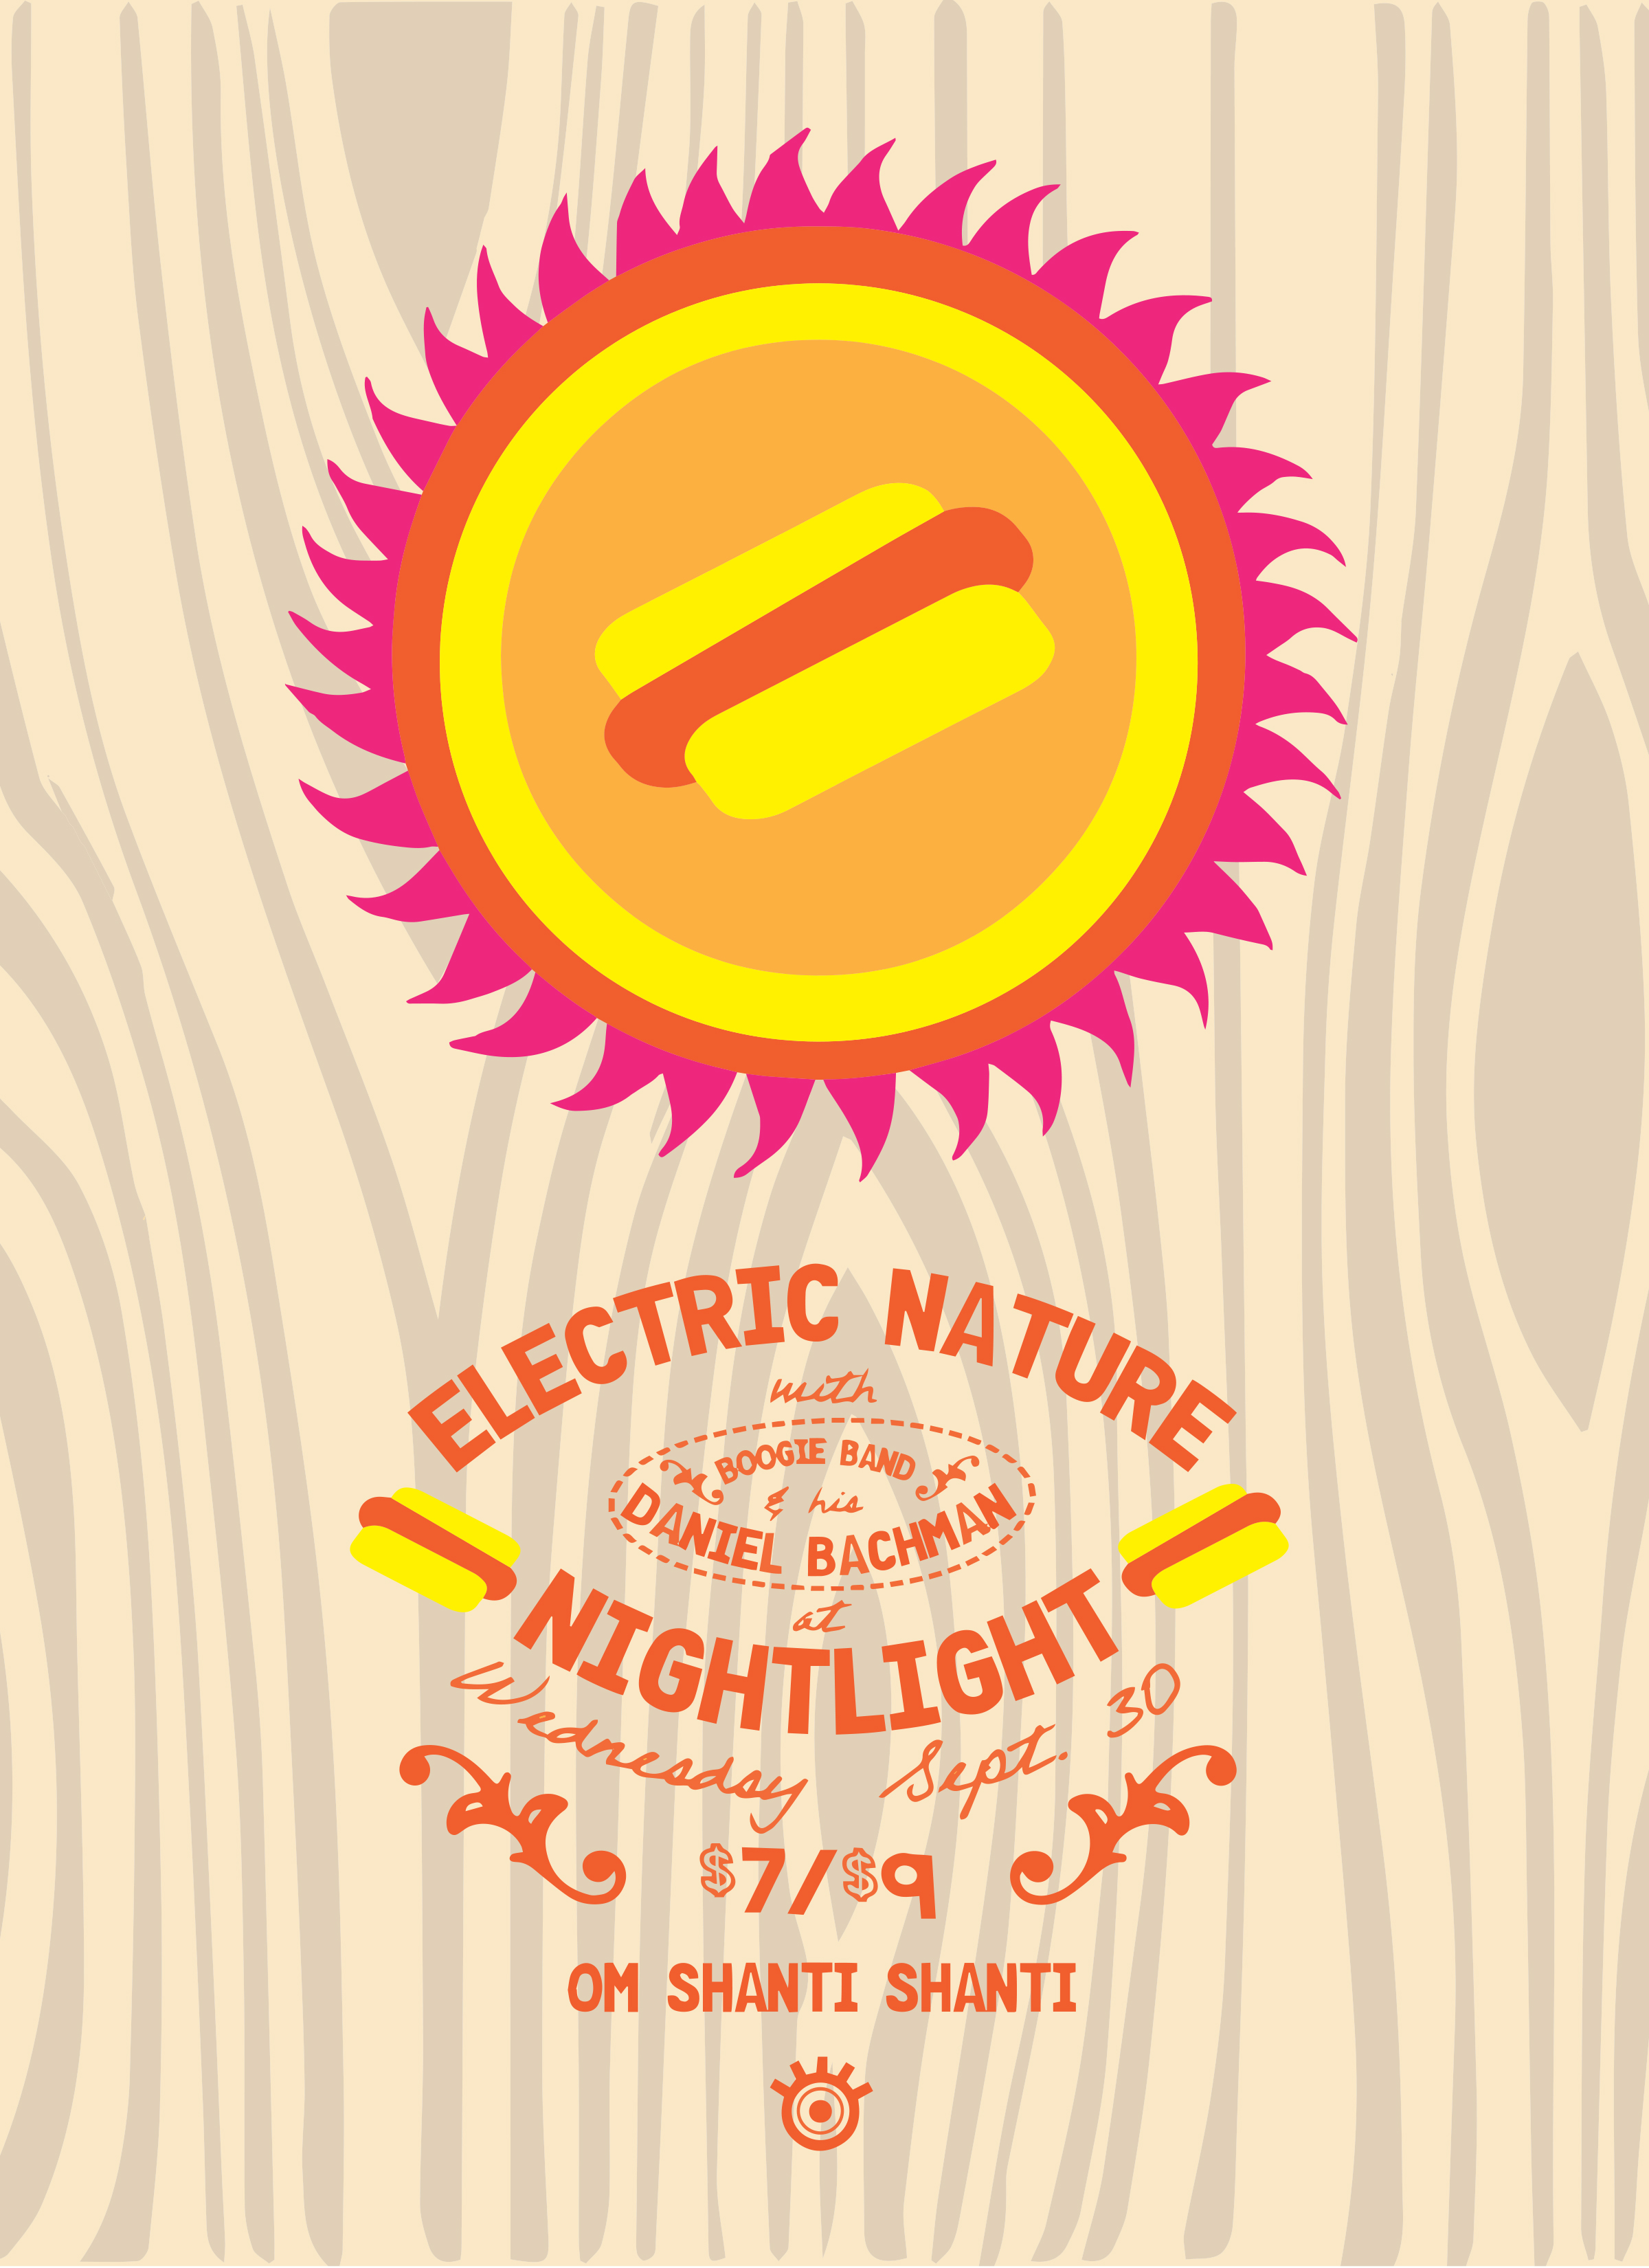 Electric Nature Poster2.jpg